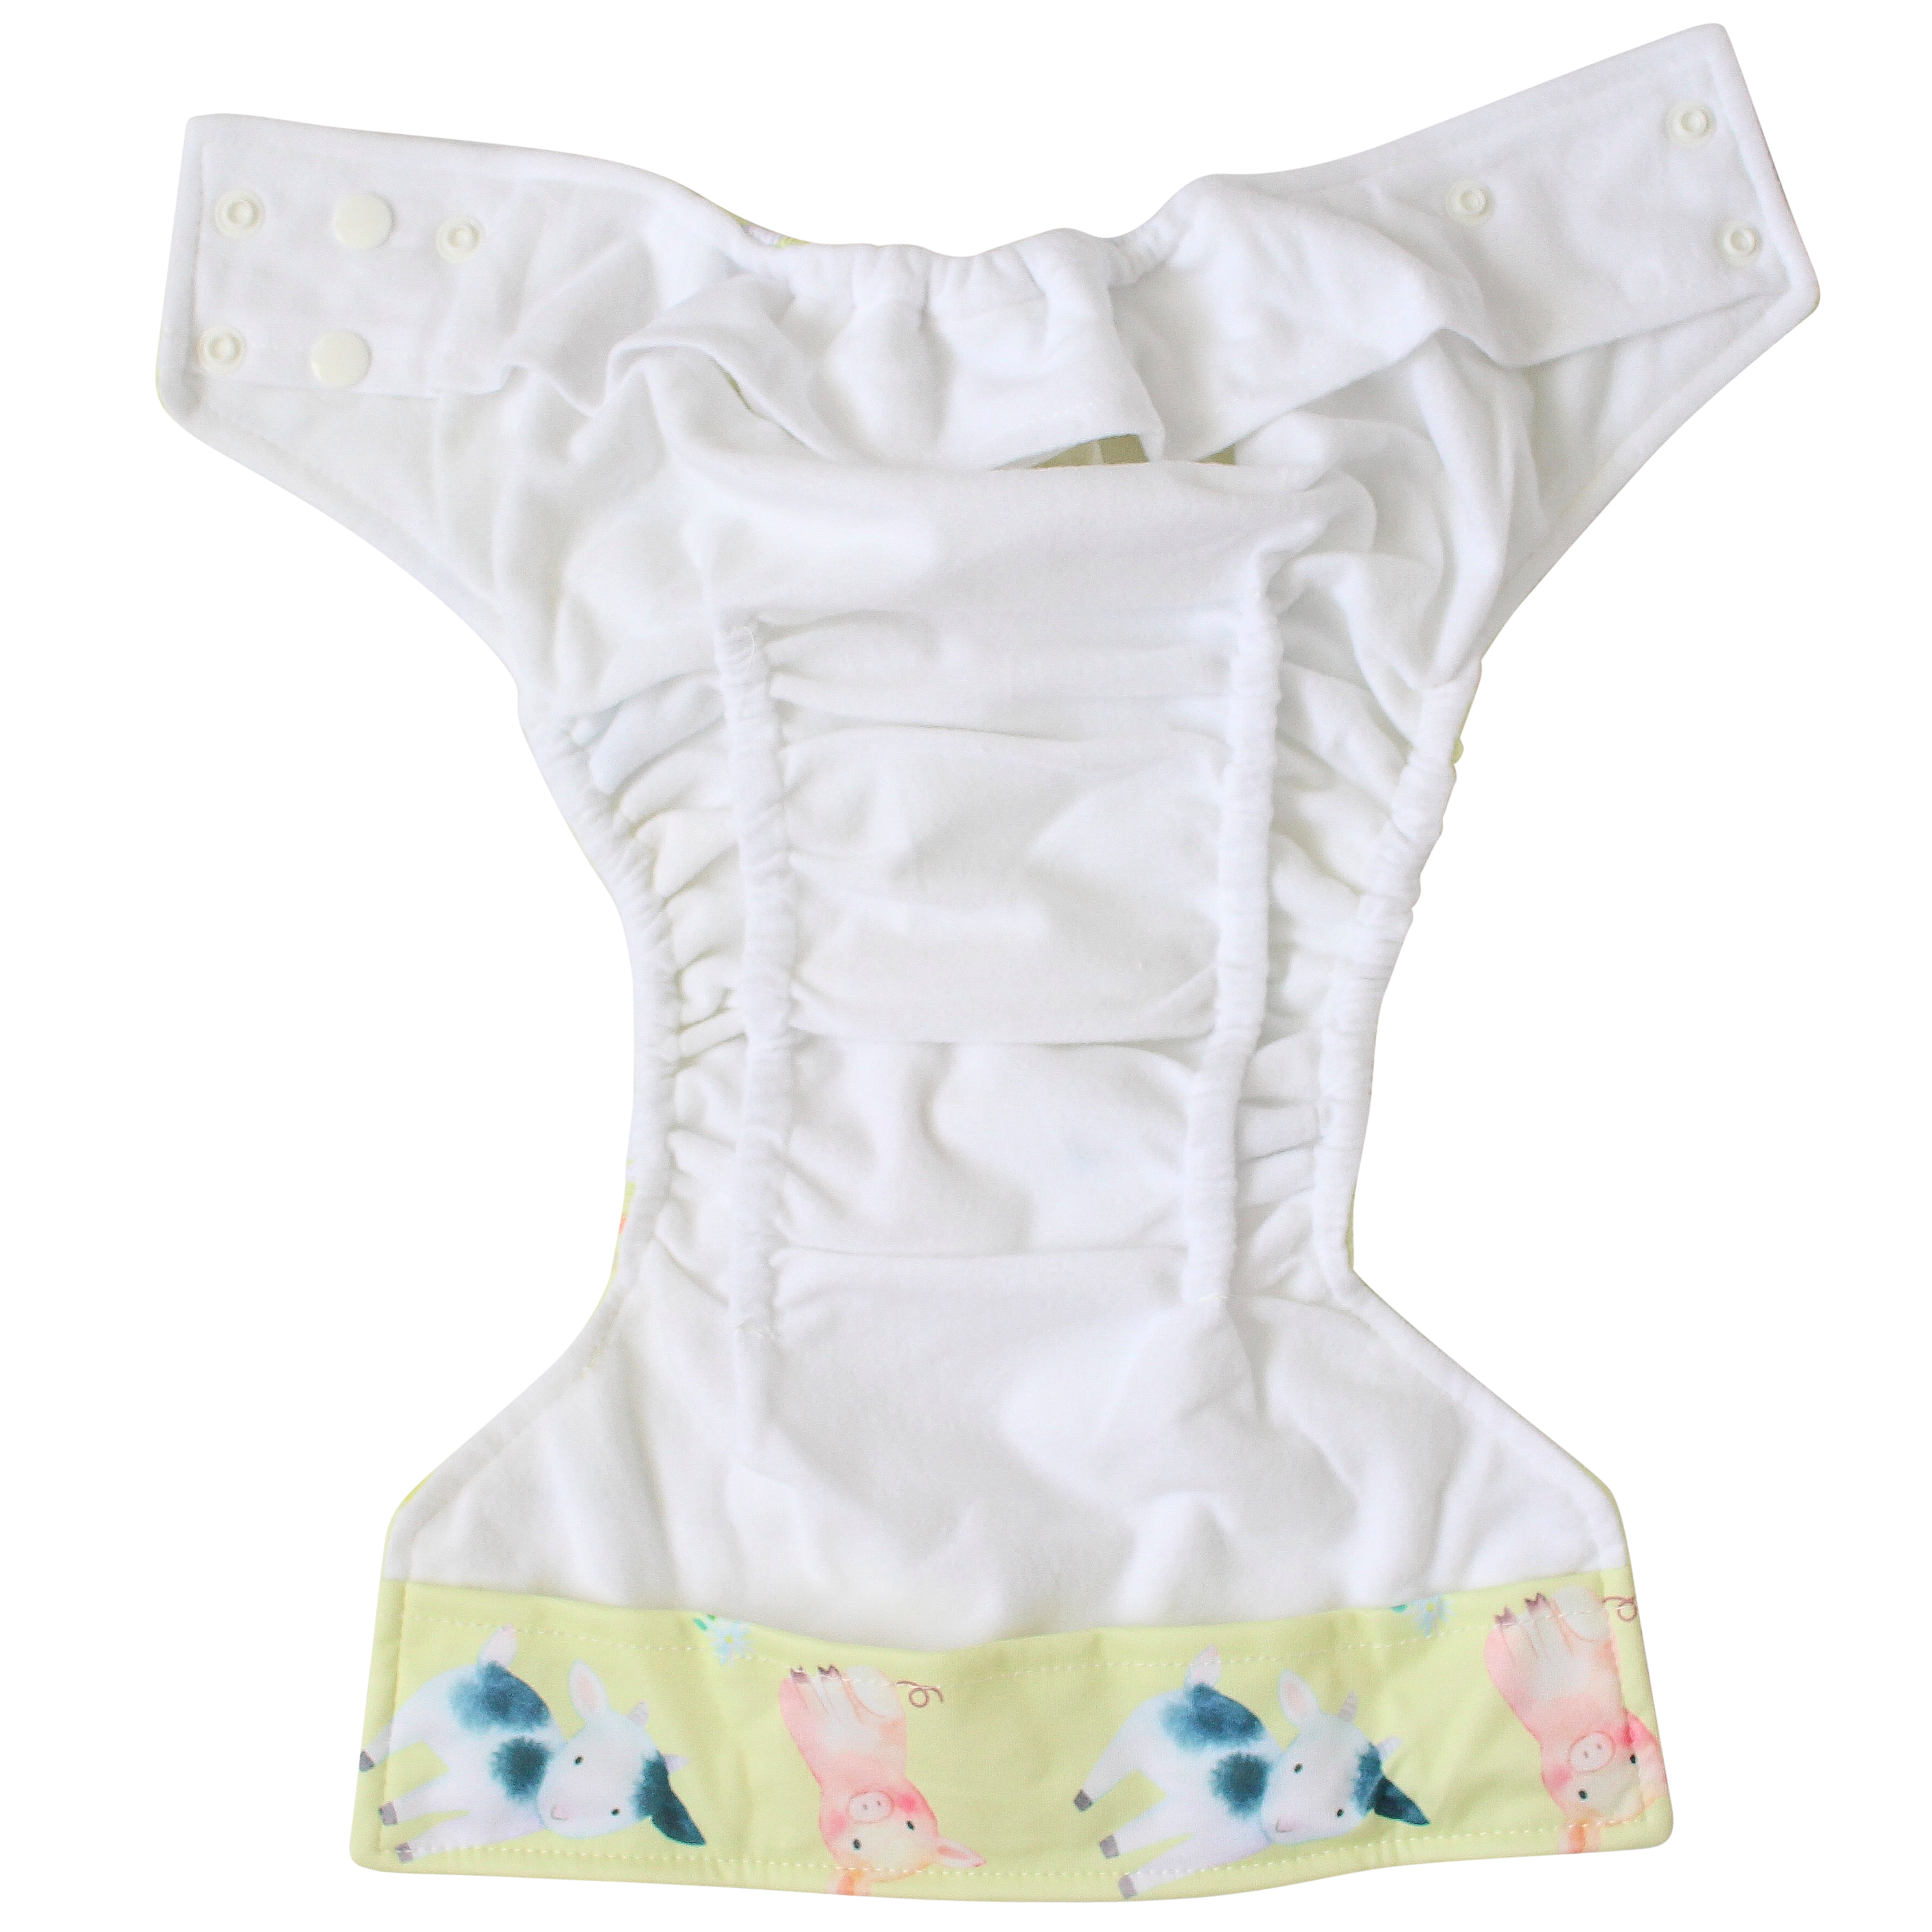 Little Princess OSFM Nappy - Boho Babes Cloth Nappies